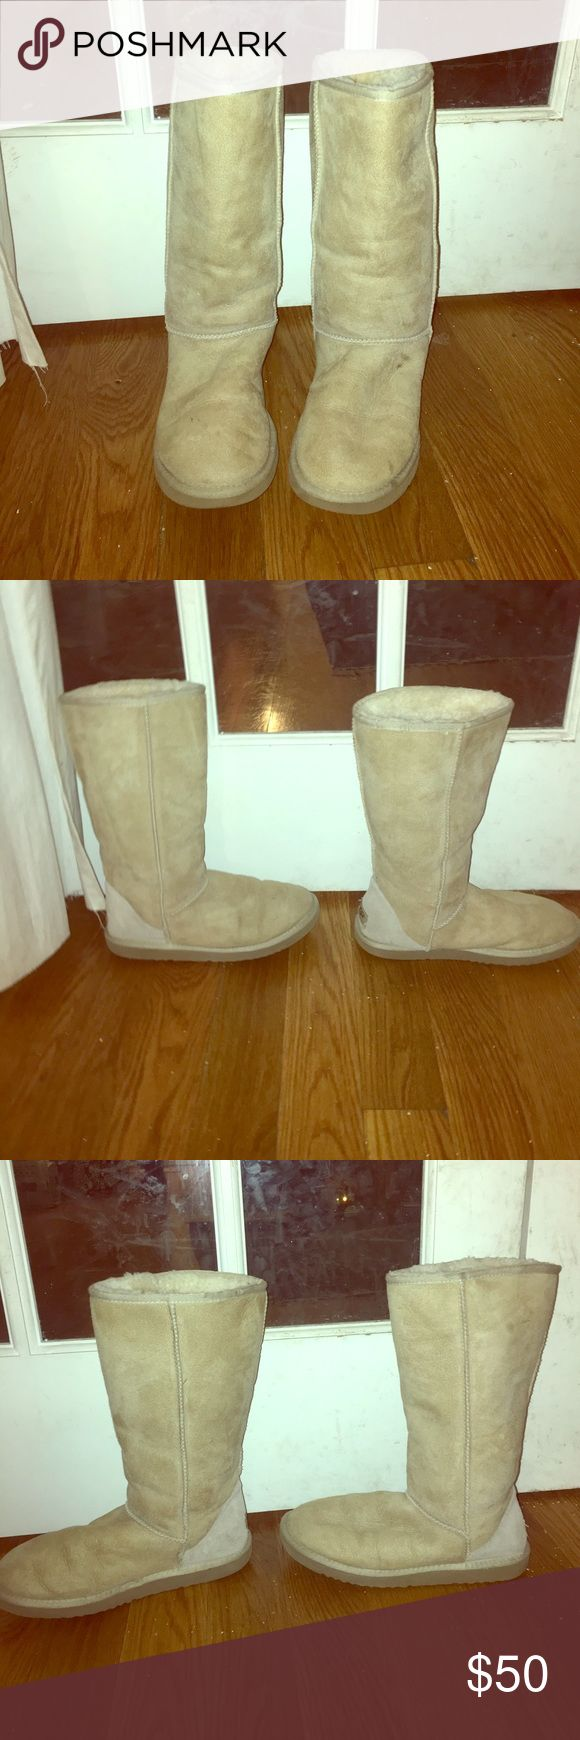 Tall Sand Uggs, Size 9 These are very lightly used tall sand women's Uggs, size 9! Very light wear. The sheepskin is in great condition, very soft and fluffy. These boots come to just below the knee and look practically new! UGG Shoes Winter & Rain Boots